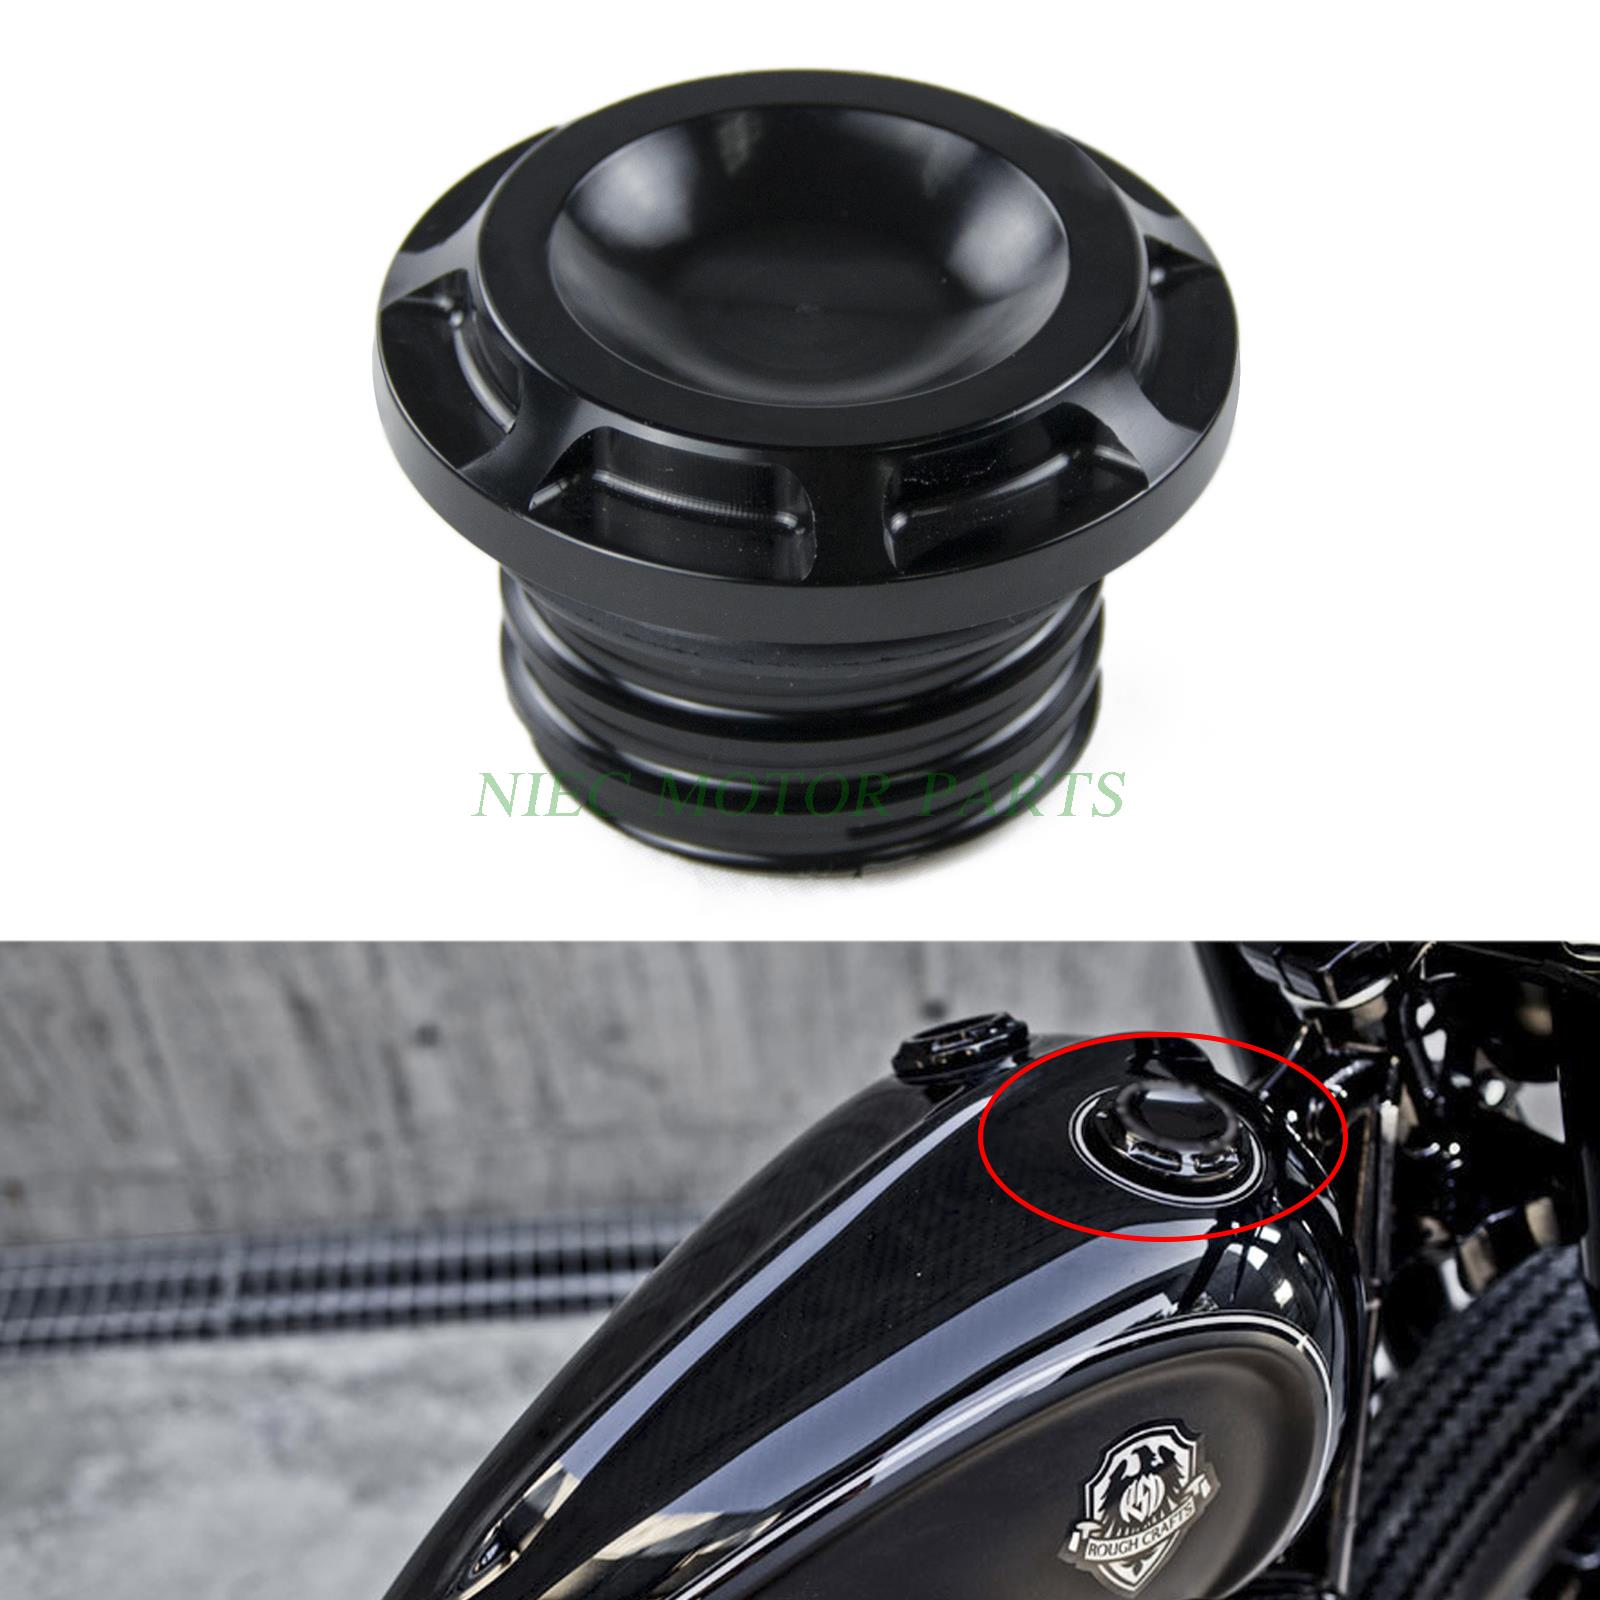 Motorcycle  CNC Groove Gas Cap Fuel Cap For Harley-Davidson Dyna Softail Sportster 883/1200 Touring Road King triclicks motorcycle black hand levers clutch brake lever handlebar for harley sportster 883 1200 softail dyna road king touring